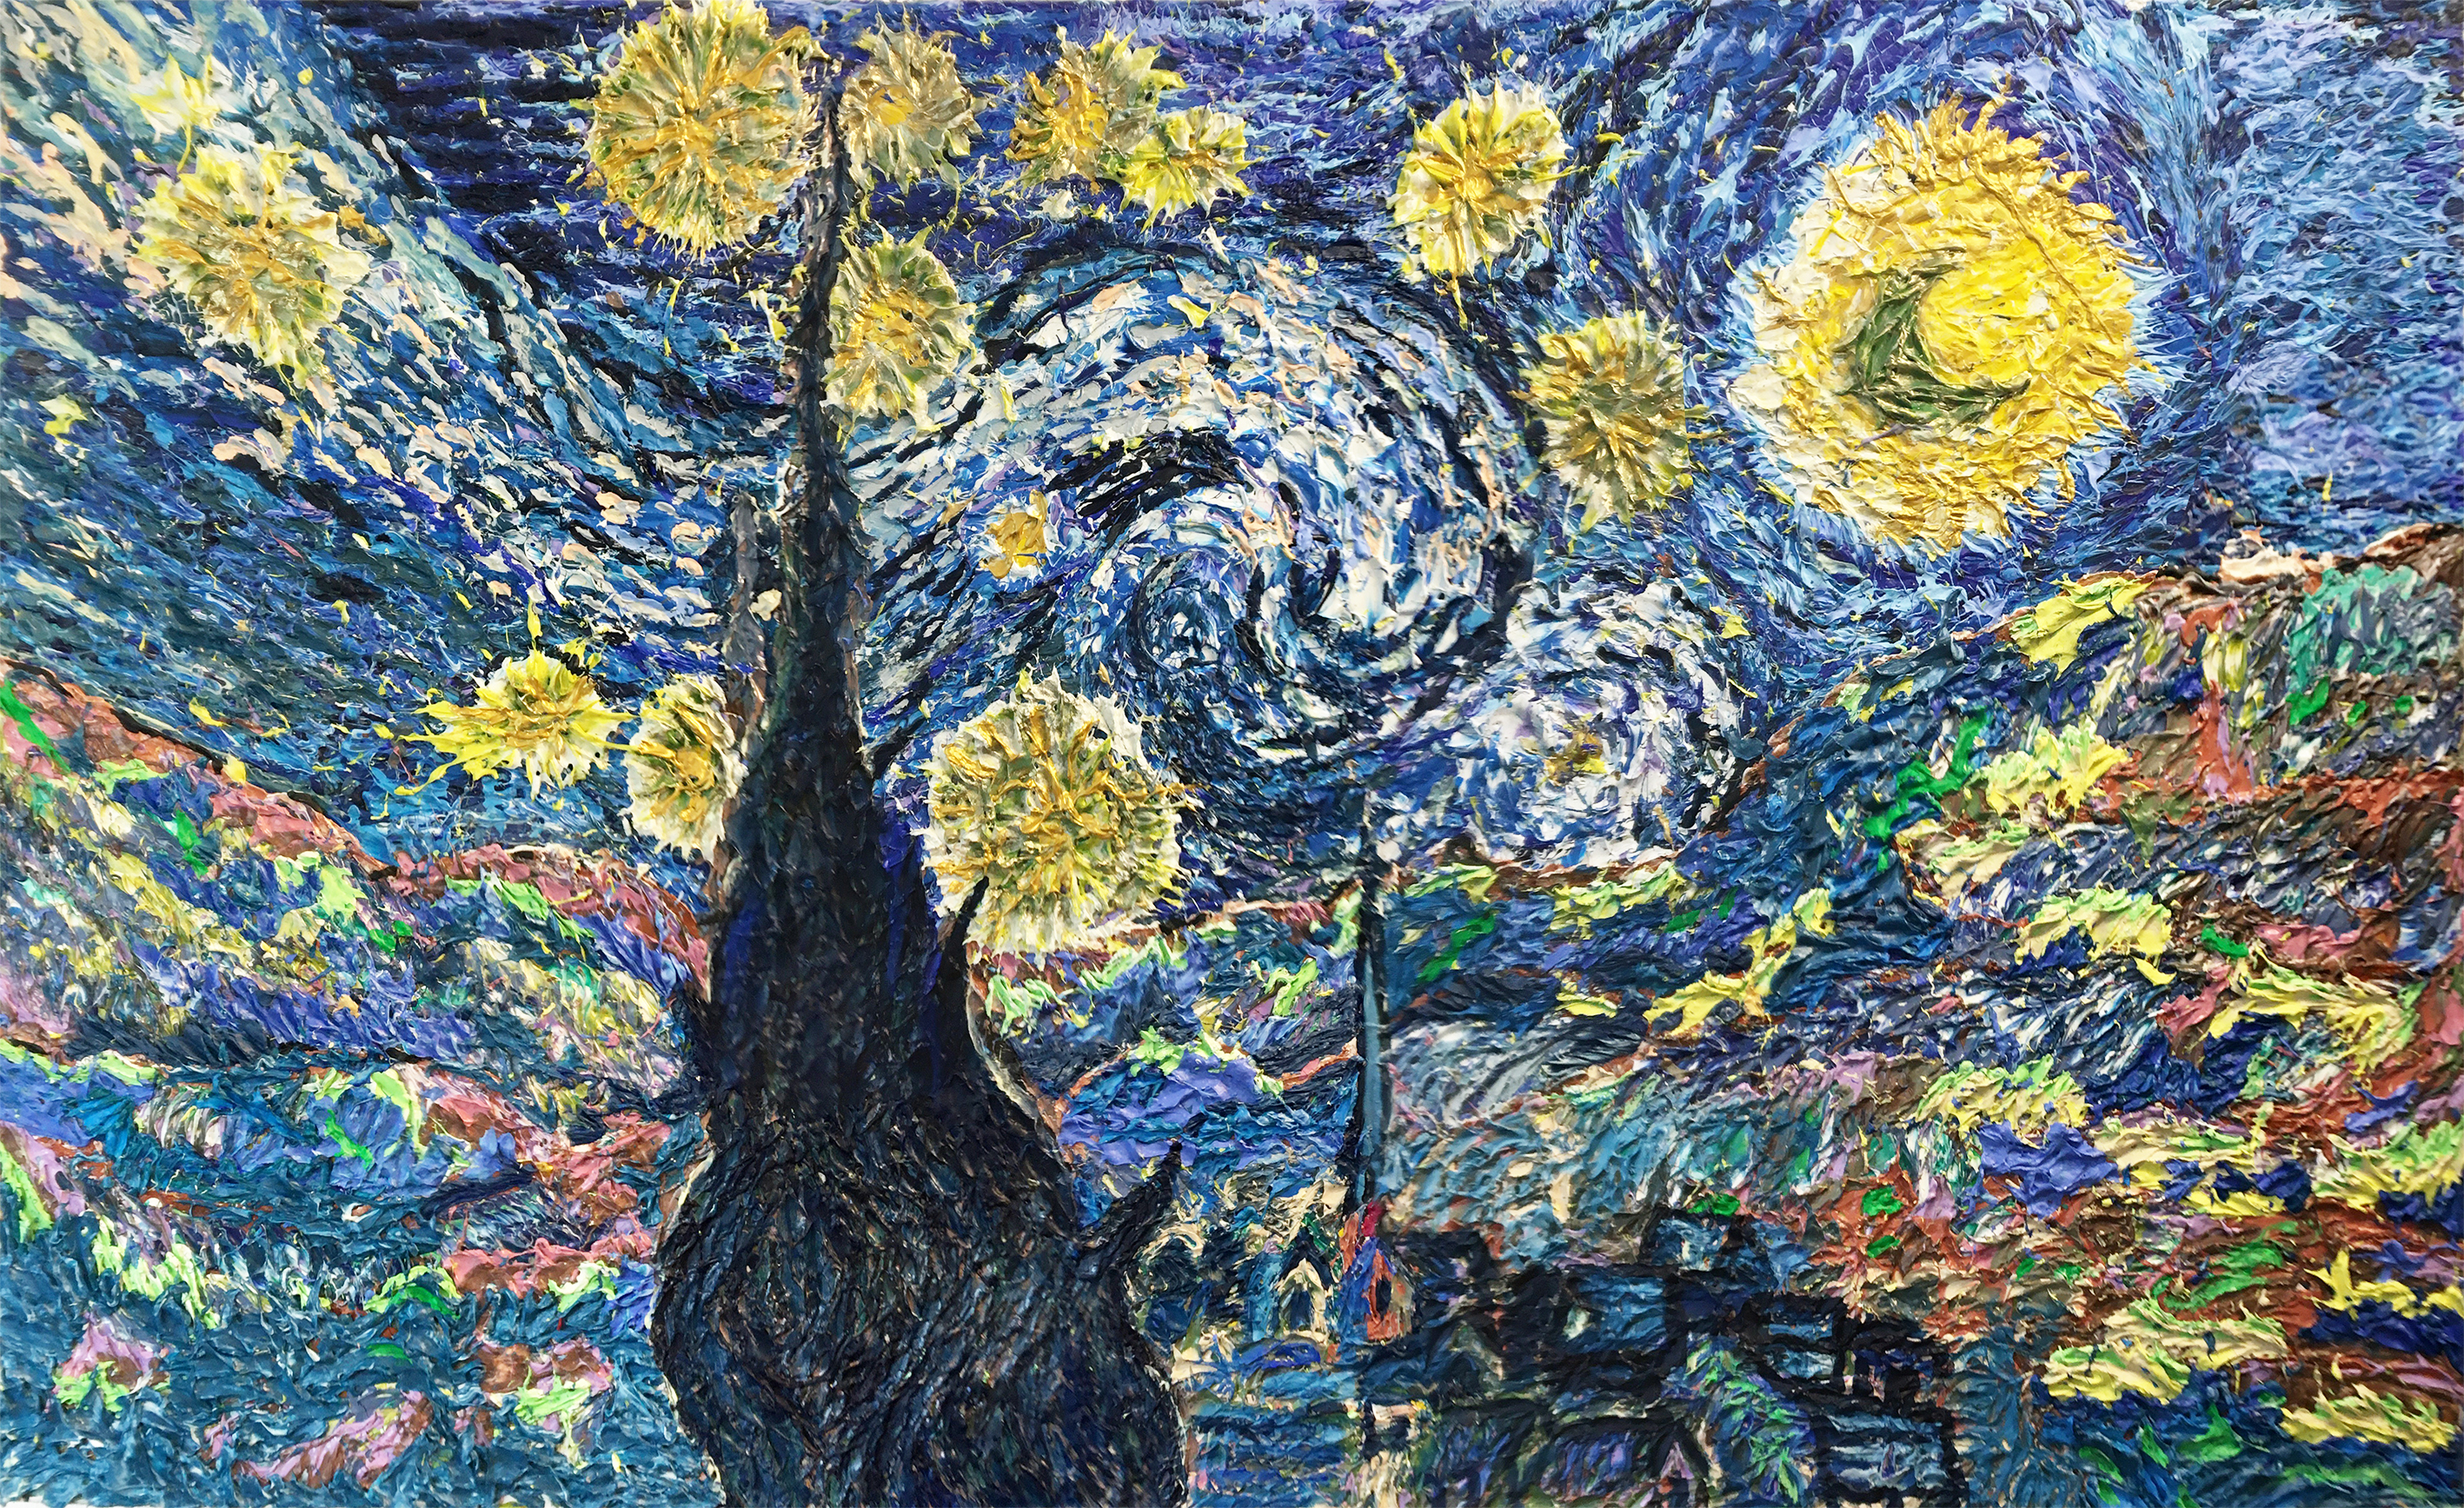 Stary night of van gogh 2020